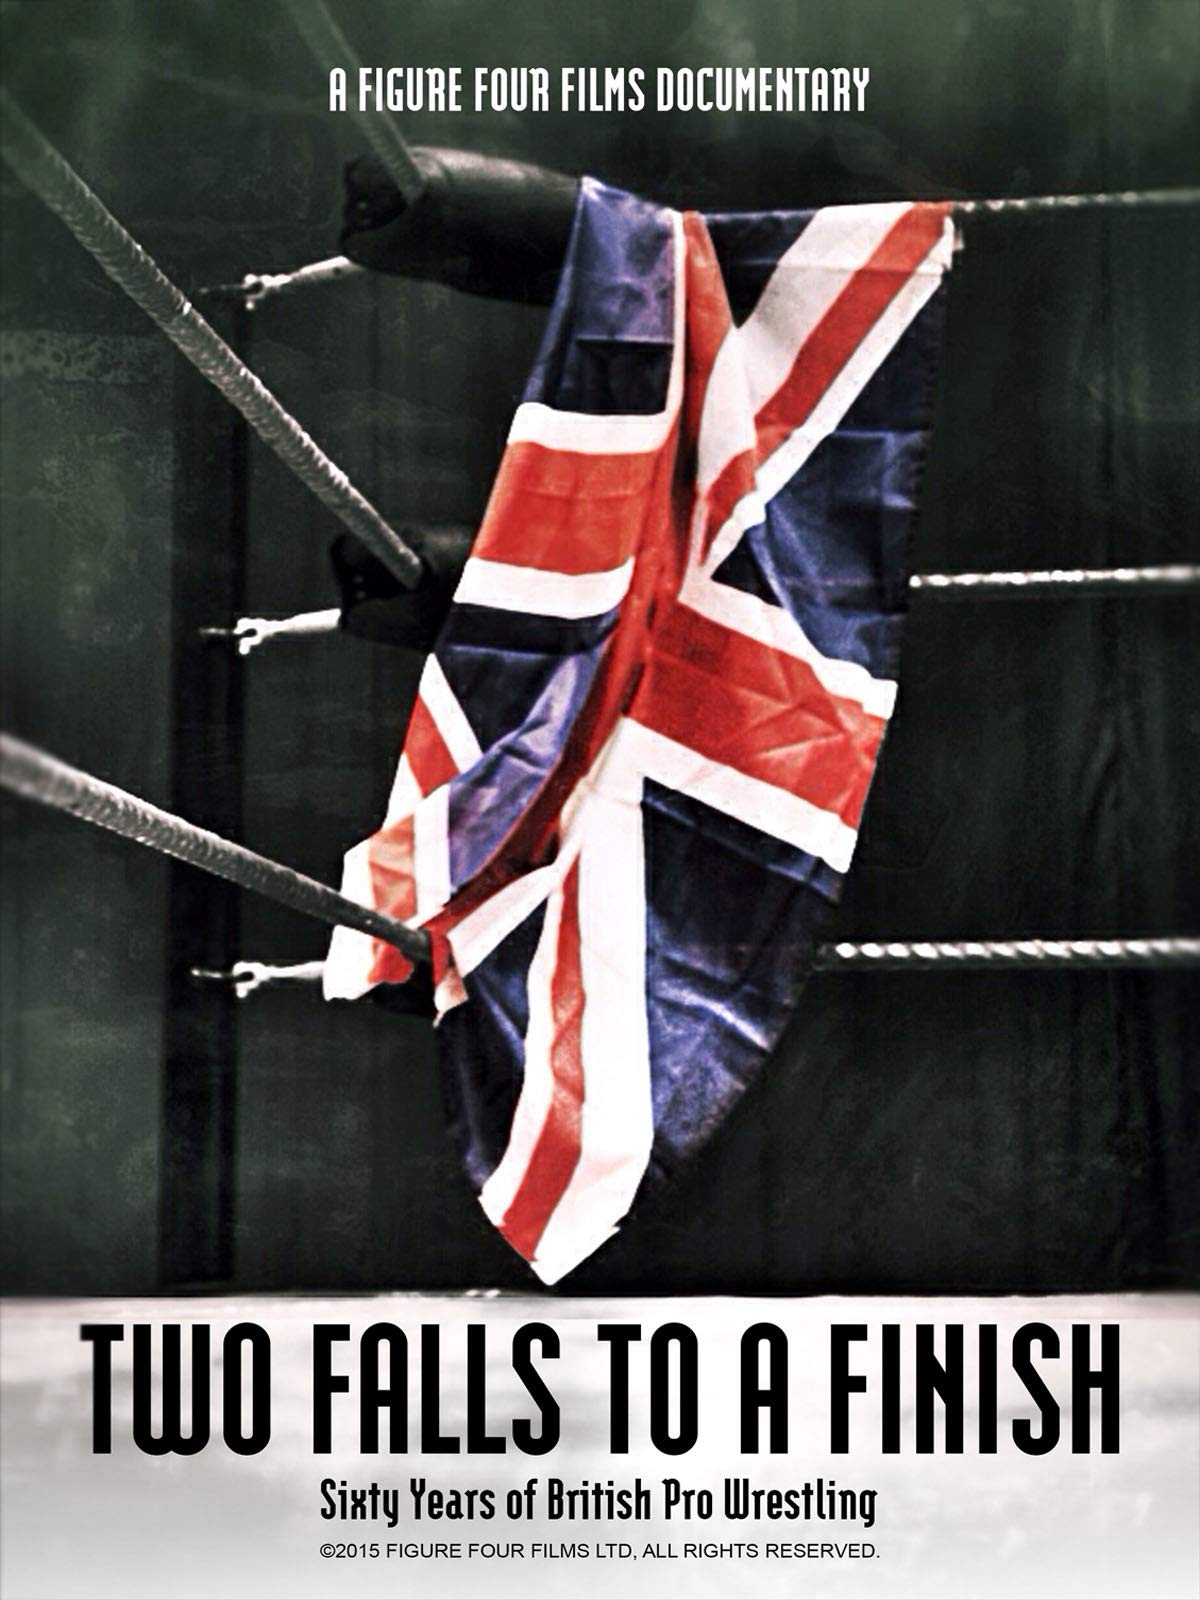 Two Falls to a Finish - 60 Years of British Pro Wrestling.